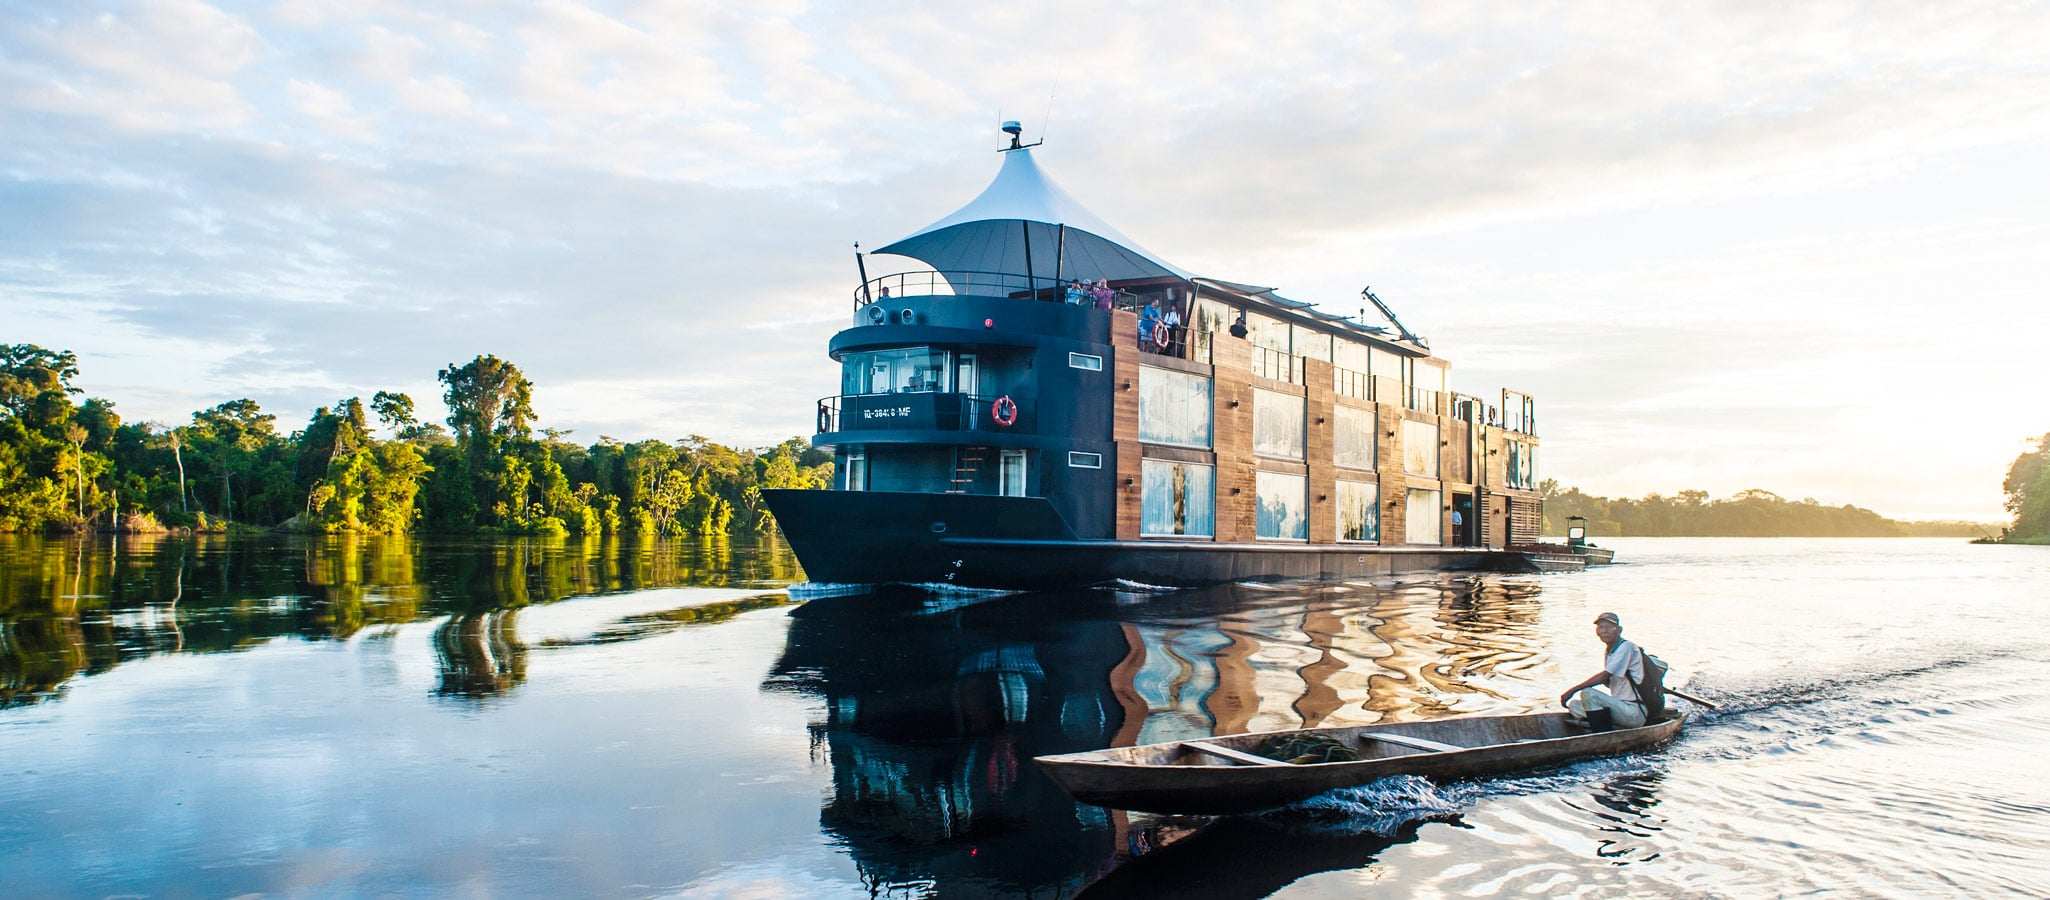 A river cruise onboard your own ship on River Mekong is among the most popular incentive experiences.